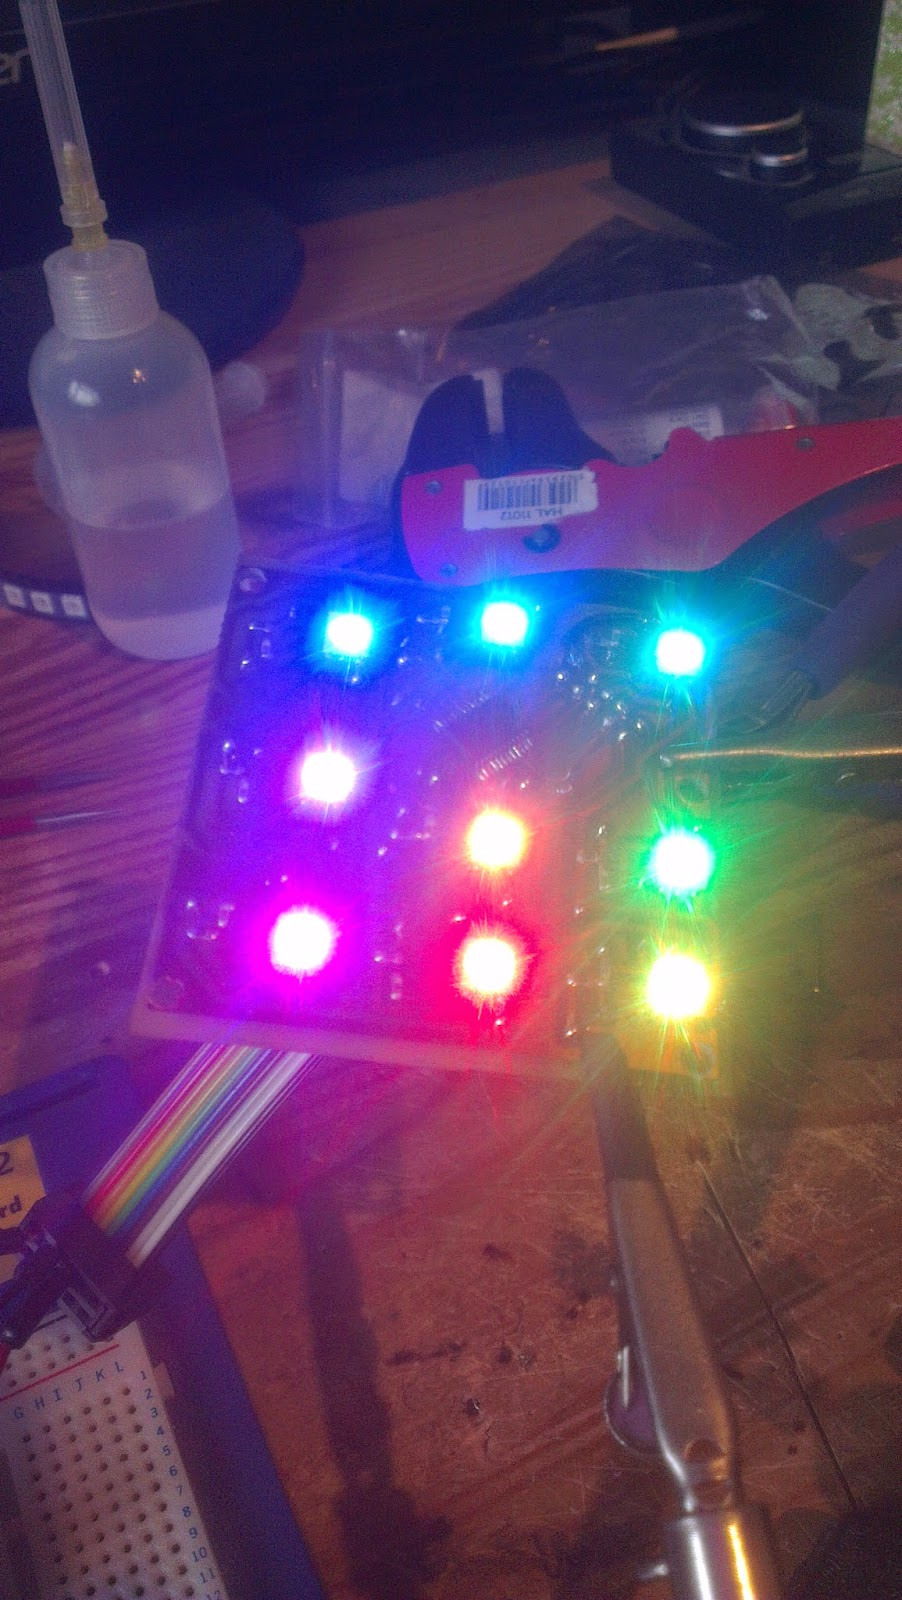 Blog Jacoburge Electronics 12 White Smd Led Car Boat Light Panel Circuit Board Ebay So Surface Mountafter Doing Some Extensive Research I Concluded It Wouldnt Be Too Difficult Picked Up A Toaster Oven On For 20 And Purchased